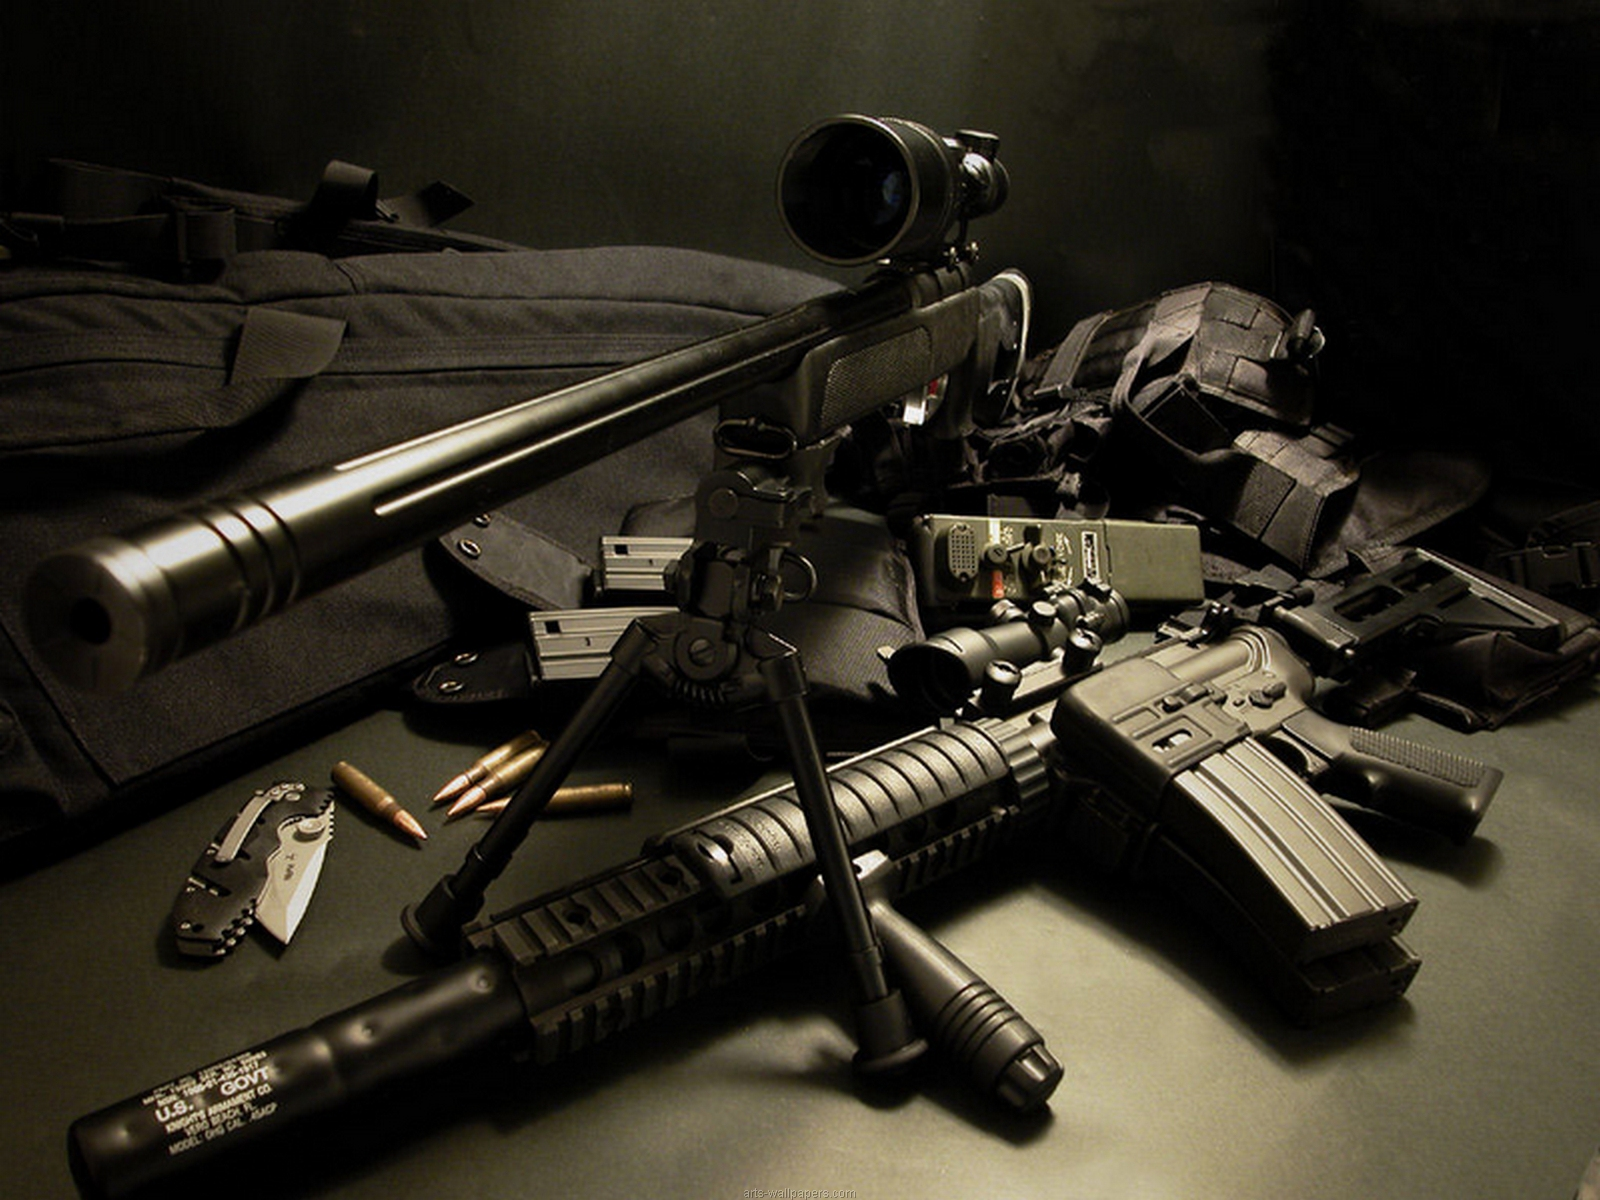 Guns Weapons Wallpapers Guns Weapons Wallpaper 27JPG 1600 x 1200 1600x1200